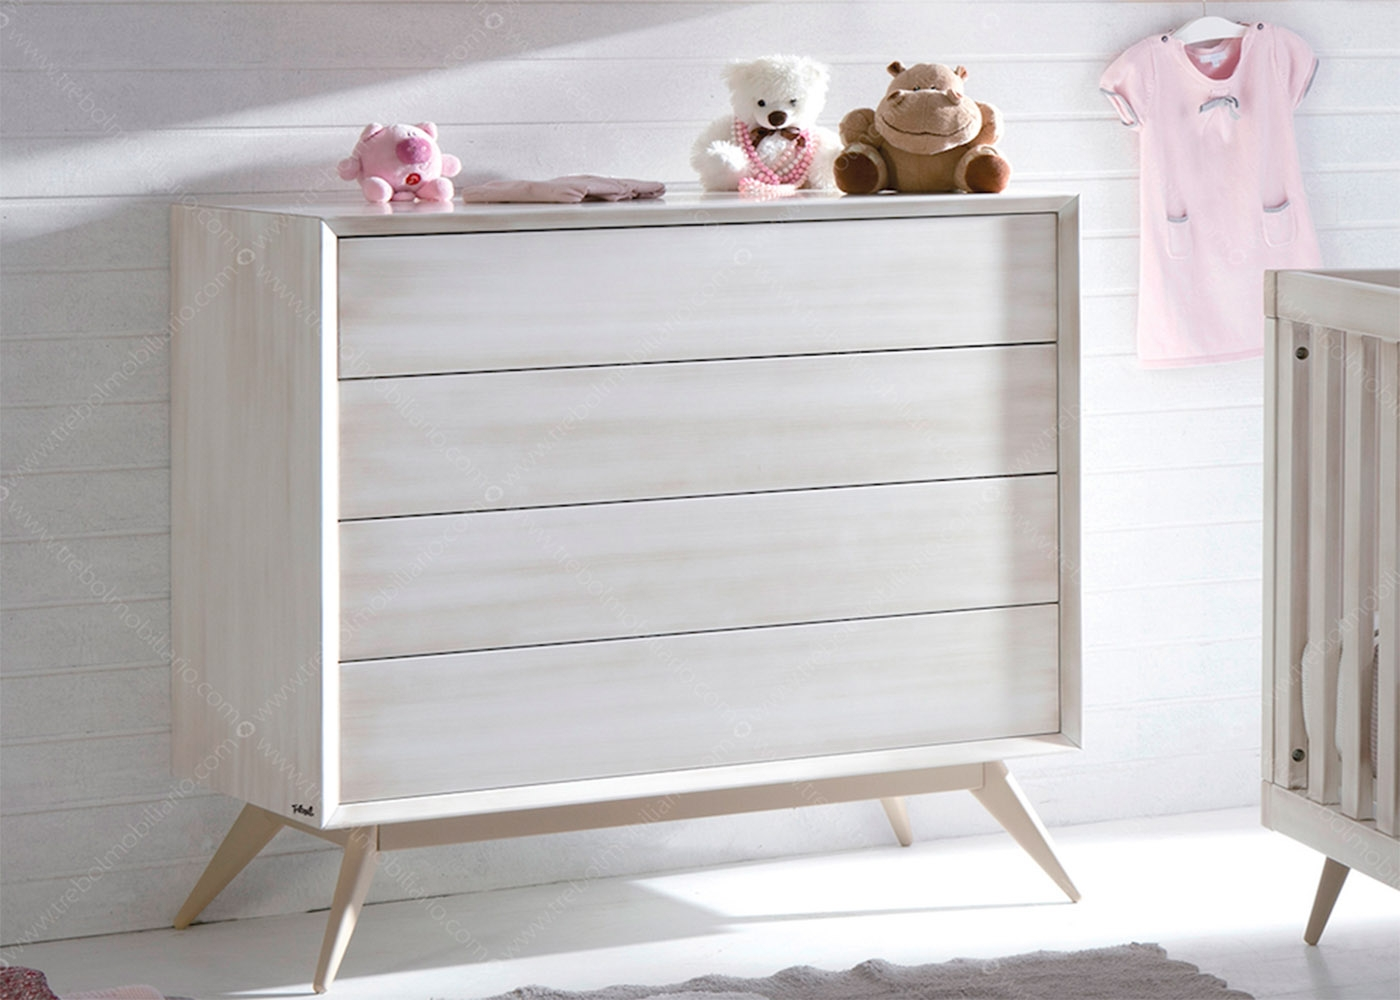 Perfect chambre bebe design scandinave avec lit commode et for Chambre bebe cocktail scandinave